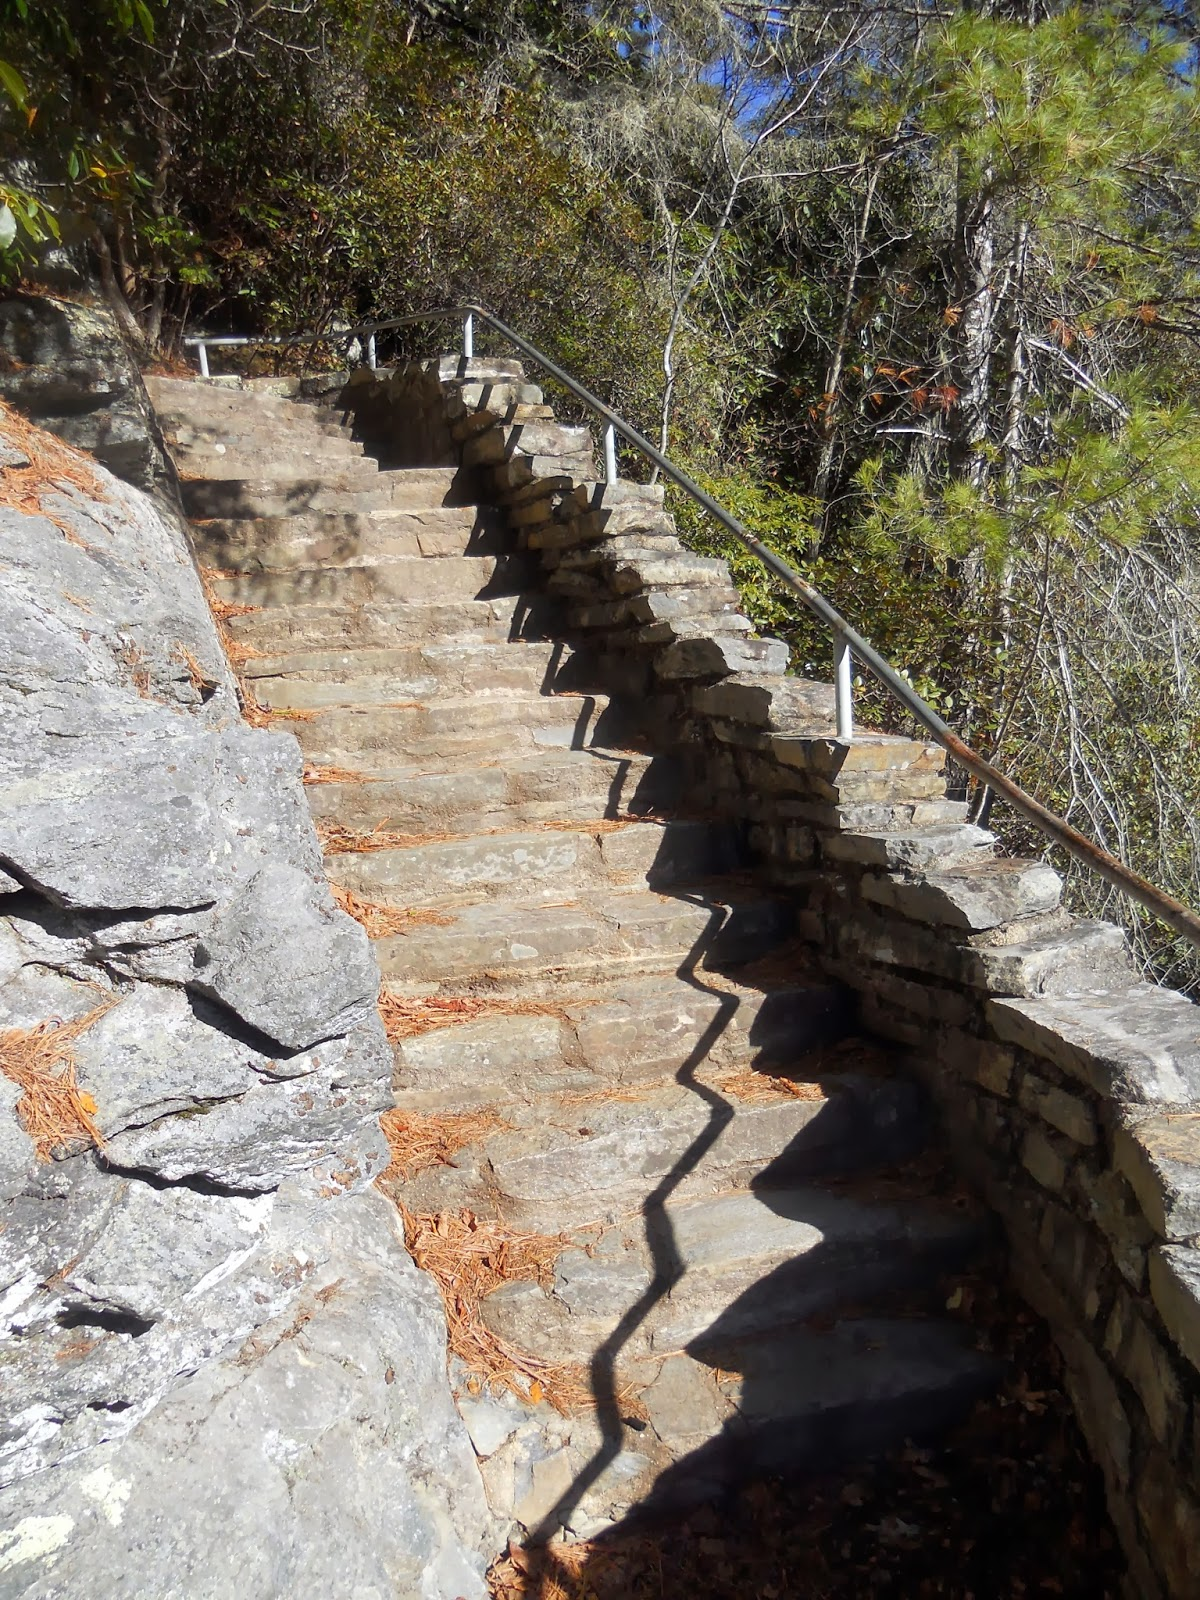 linville falls guys 115 reviews of grandfather mountain one of my absolute favorite state parks i've ever visited  lol hey, guys,  linville falls visitor center and hiking trails.